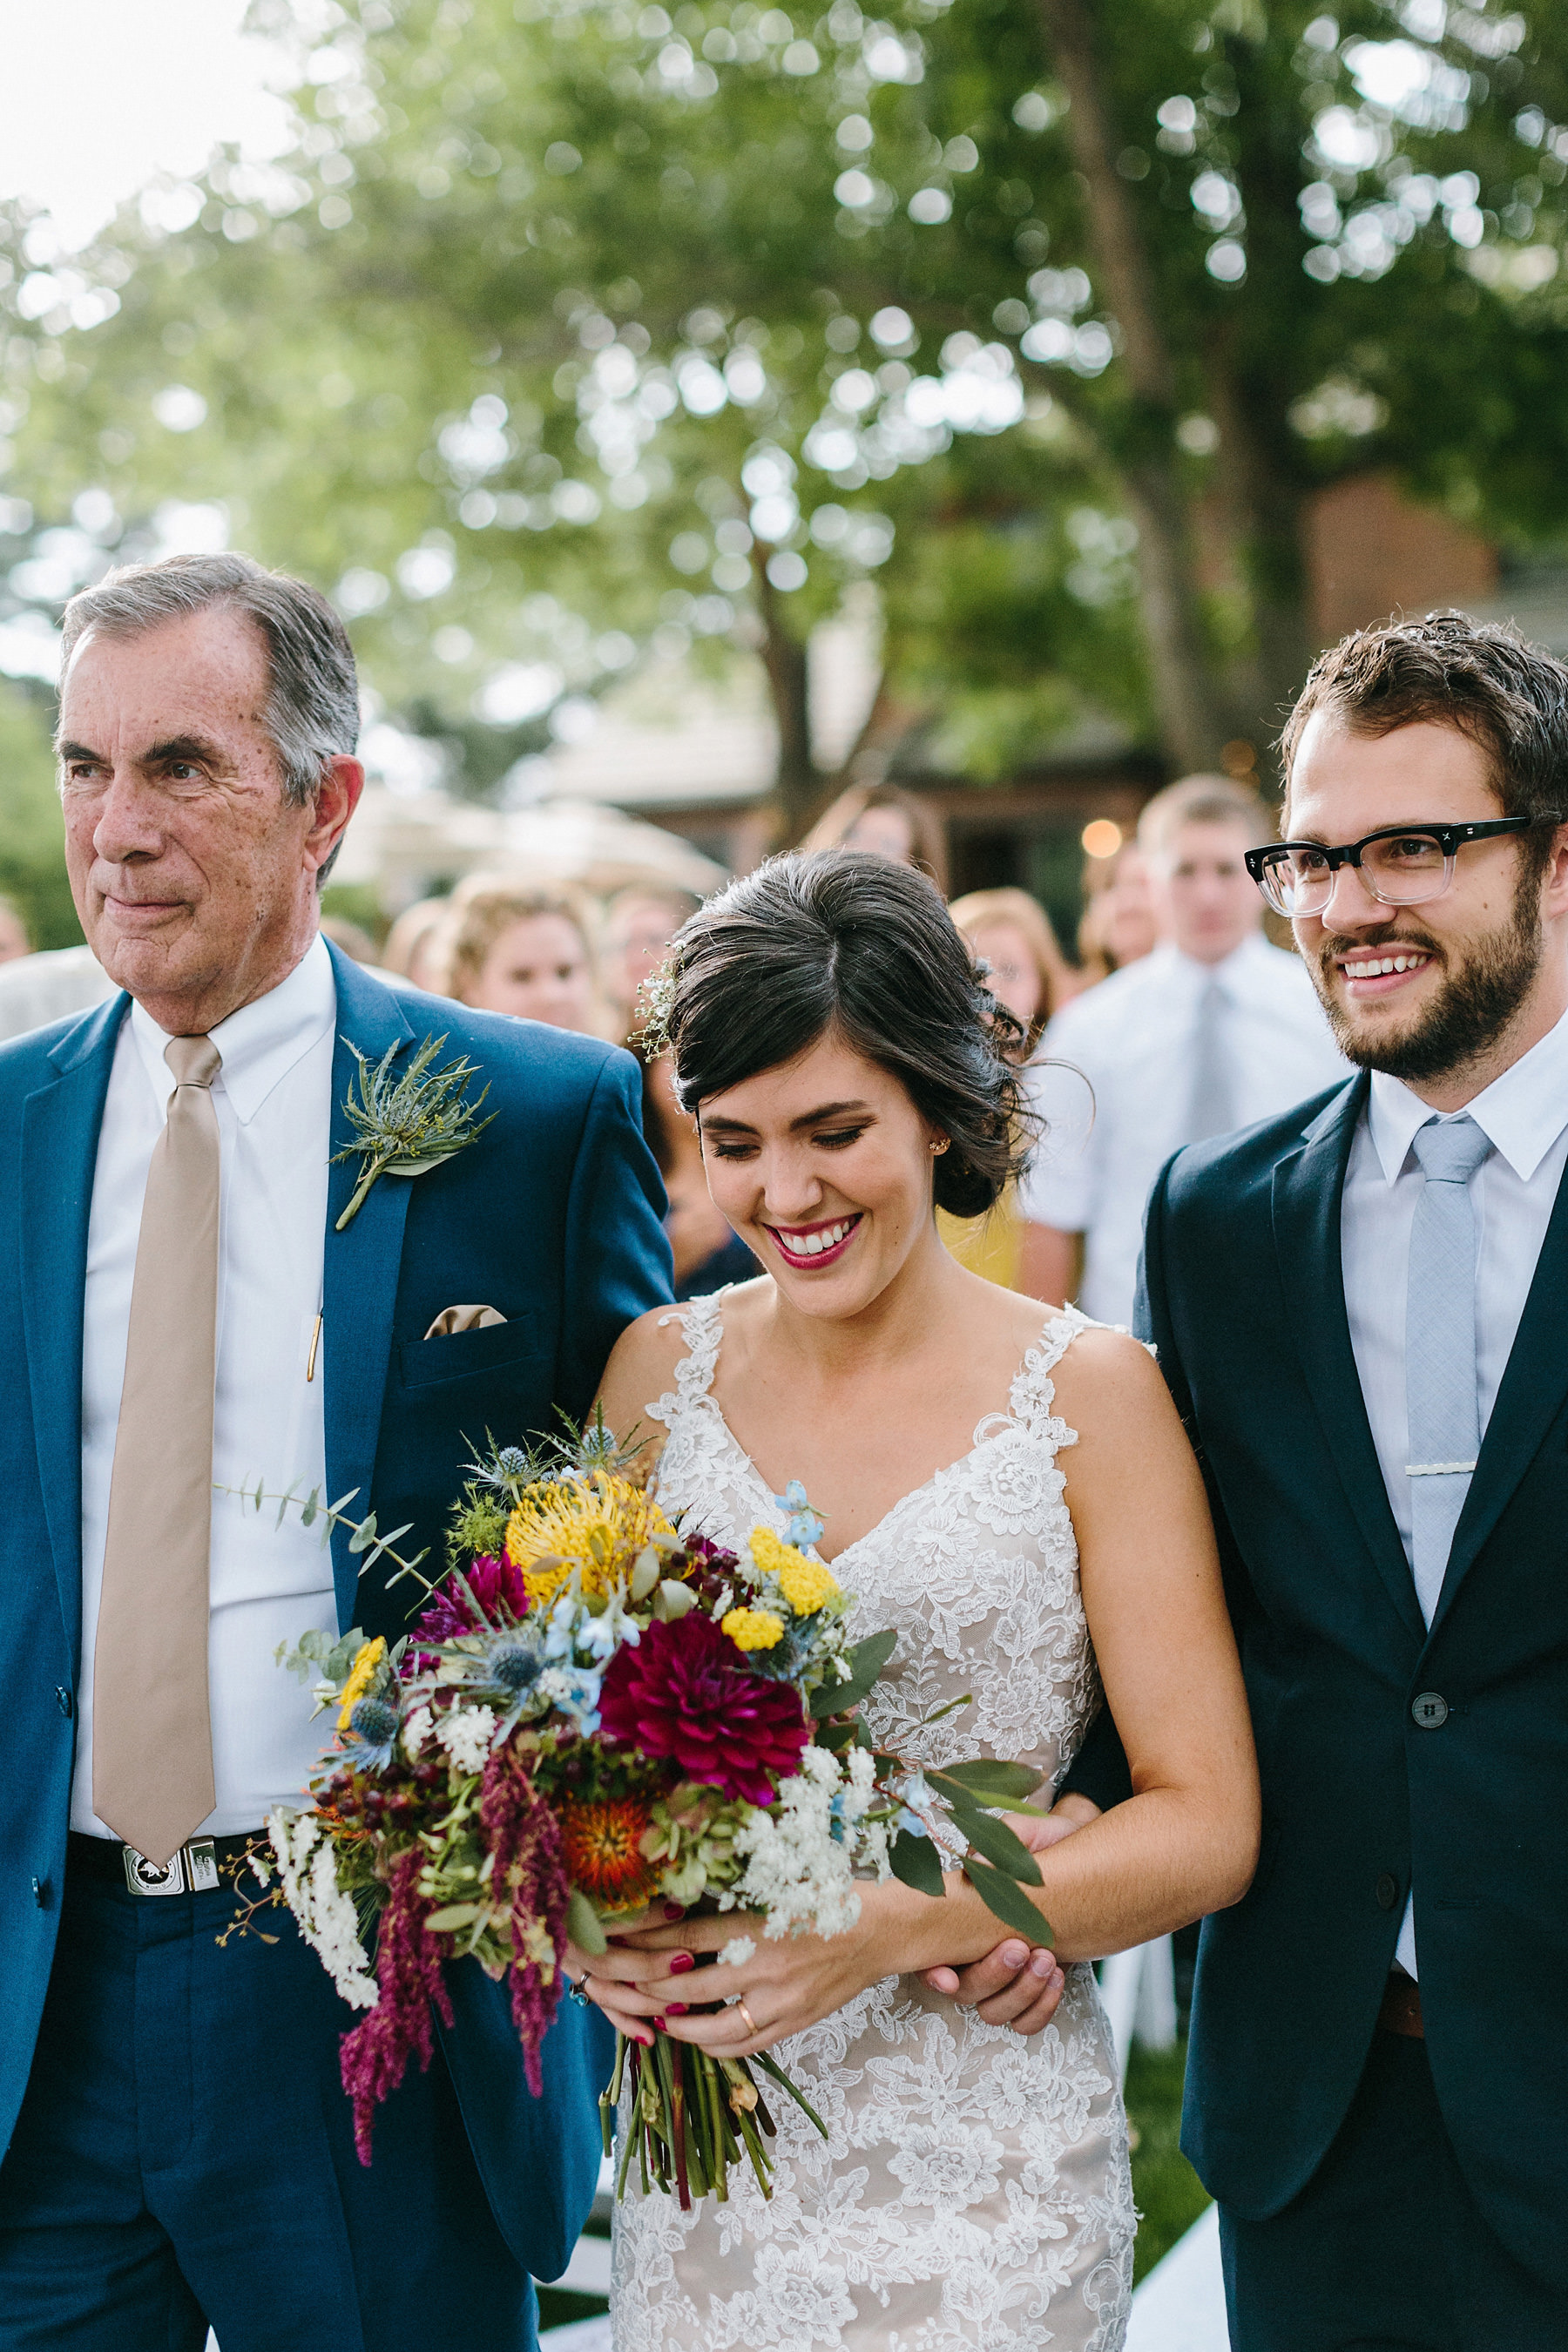 239_Backyard Outdoor Wedding Cherry Hills Village Denver, Colorado_Kindling Wedding Photography.JPG